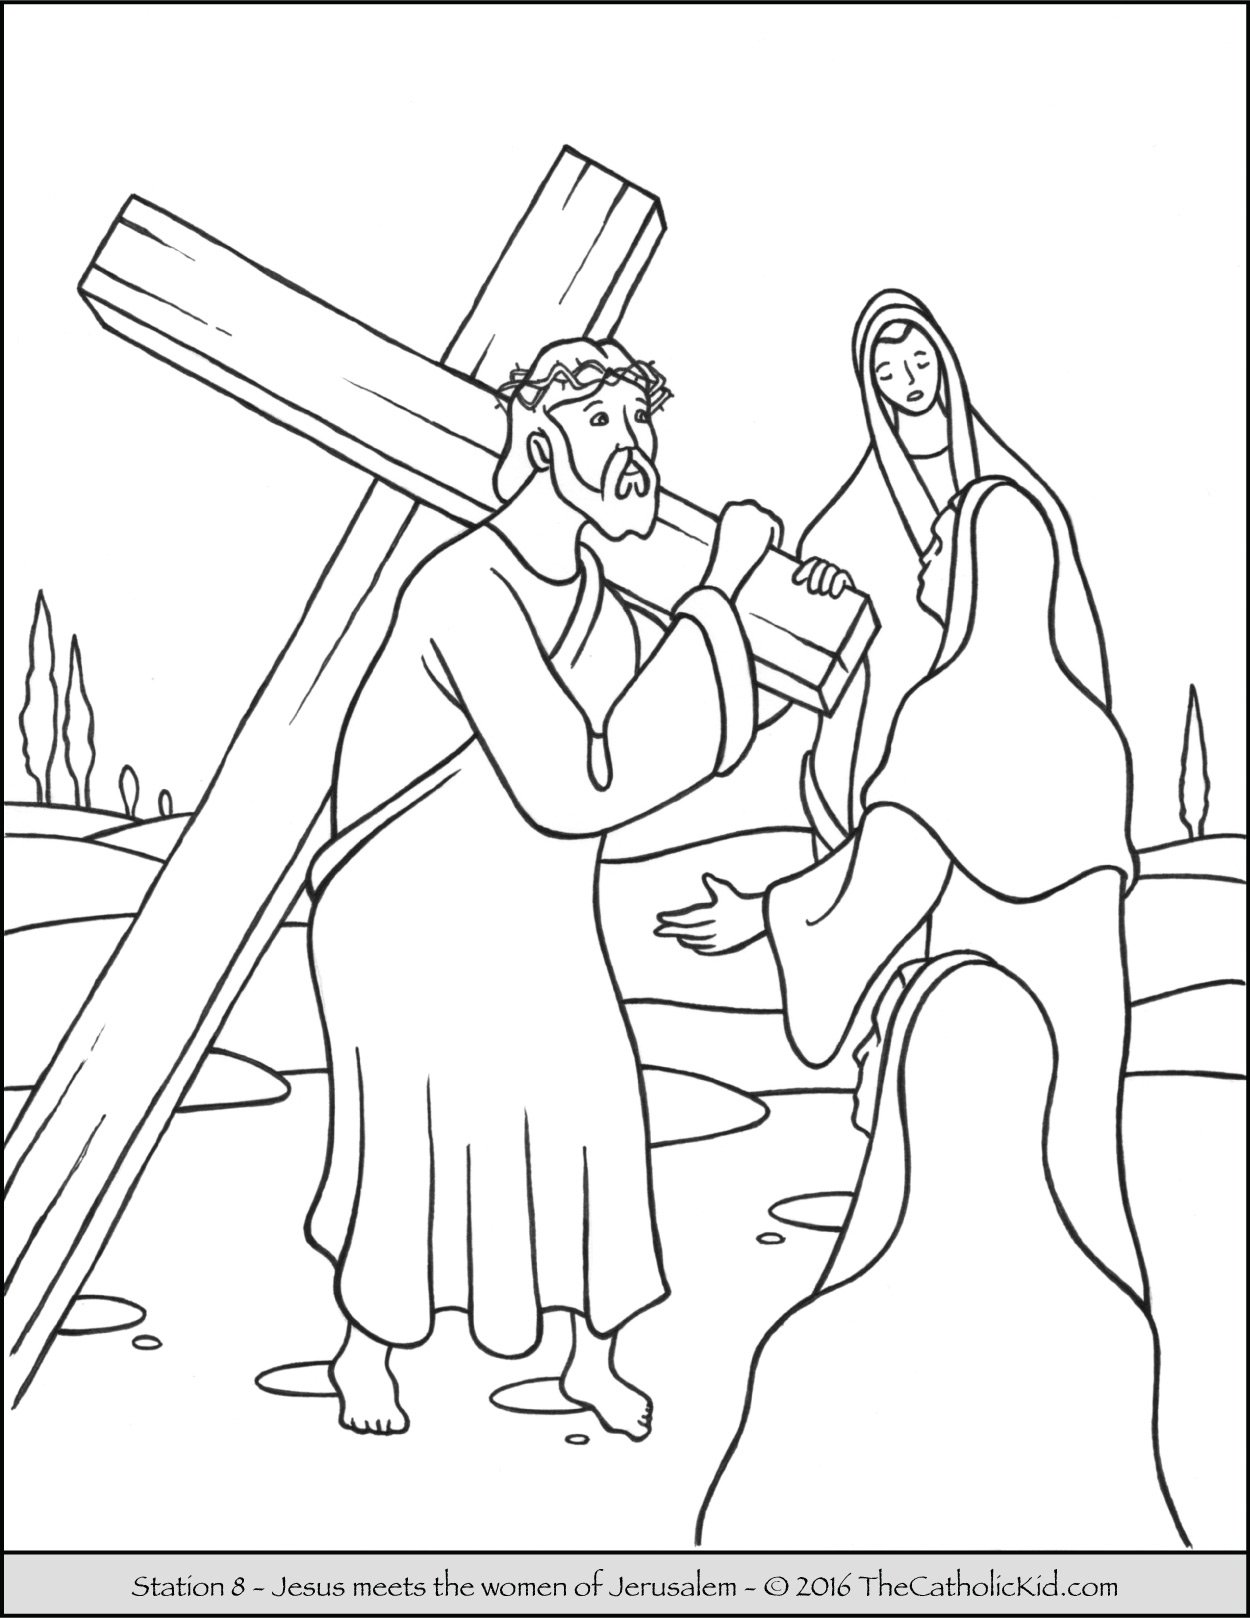 Stations of the Cross Coloring Pages 8 - Jesus Meets the Women of Jerusalem